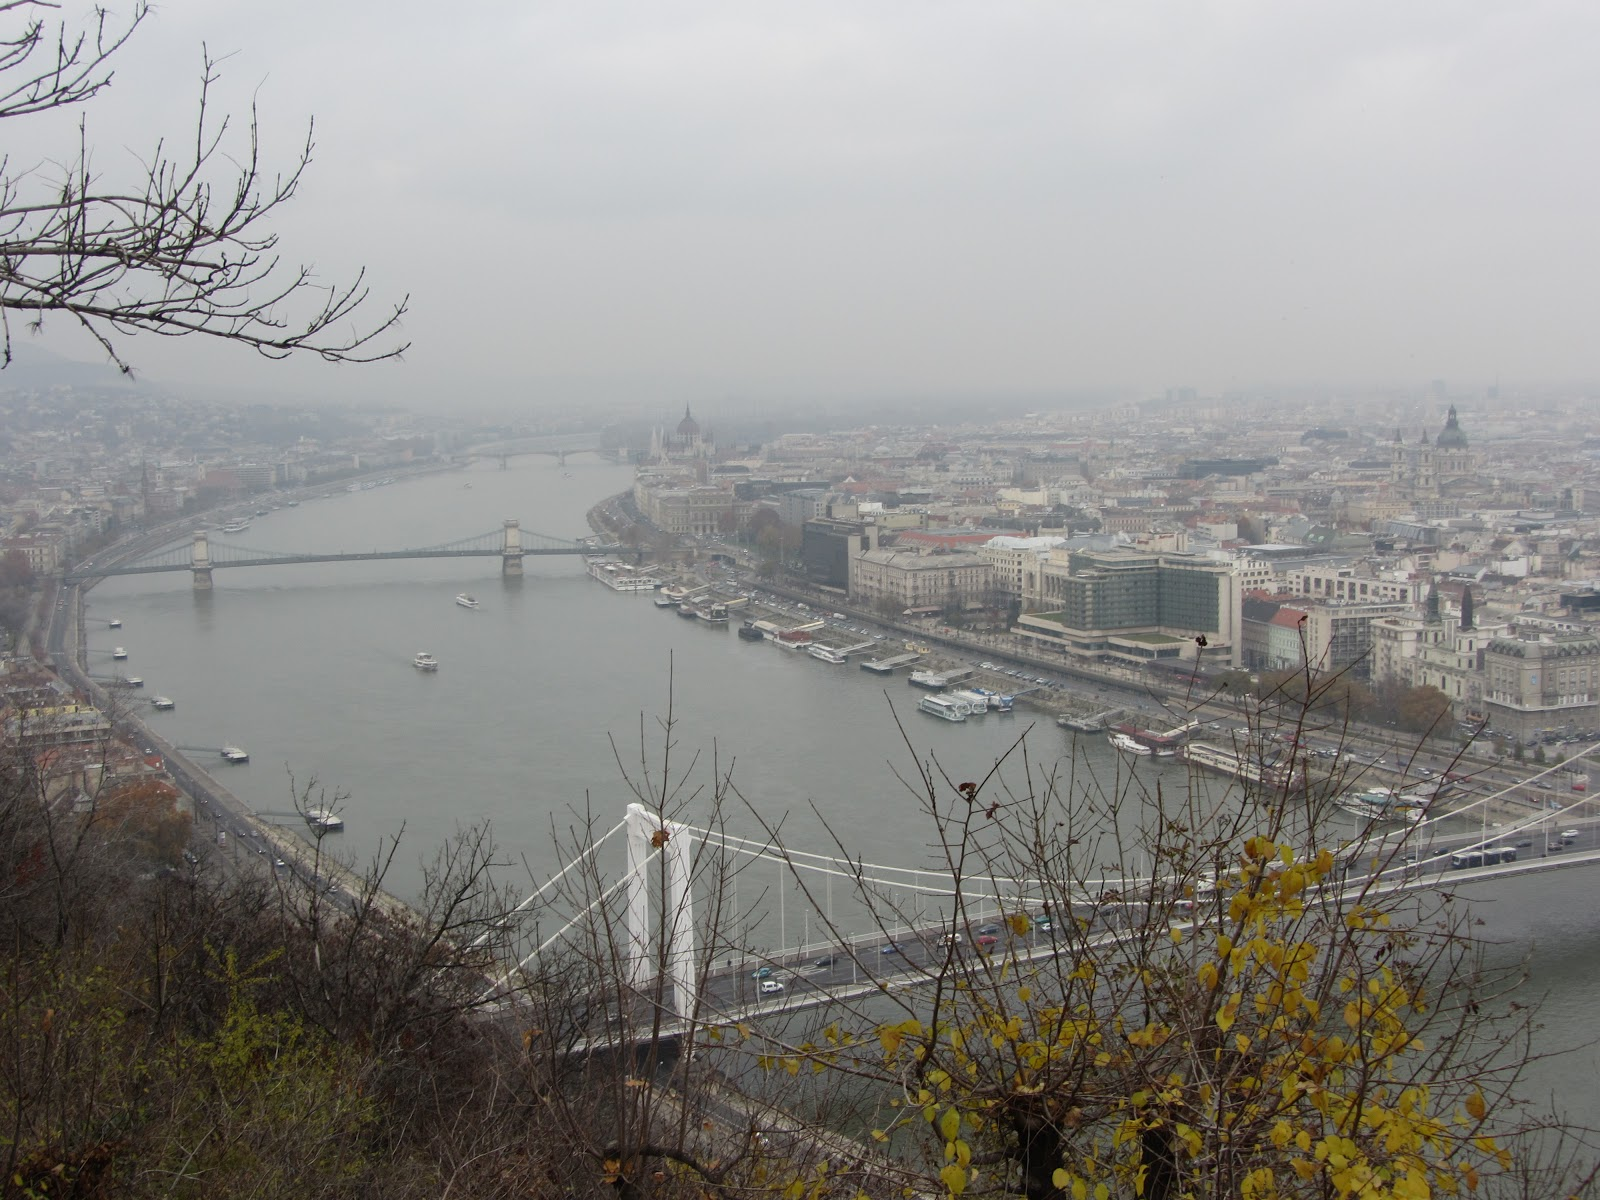 View of the Danube from Gellért Hill